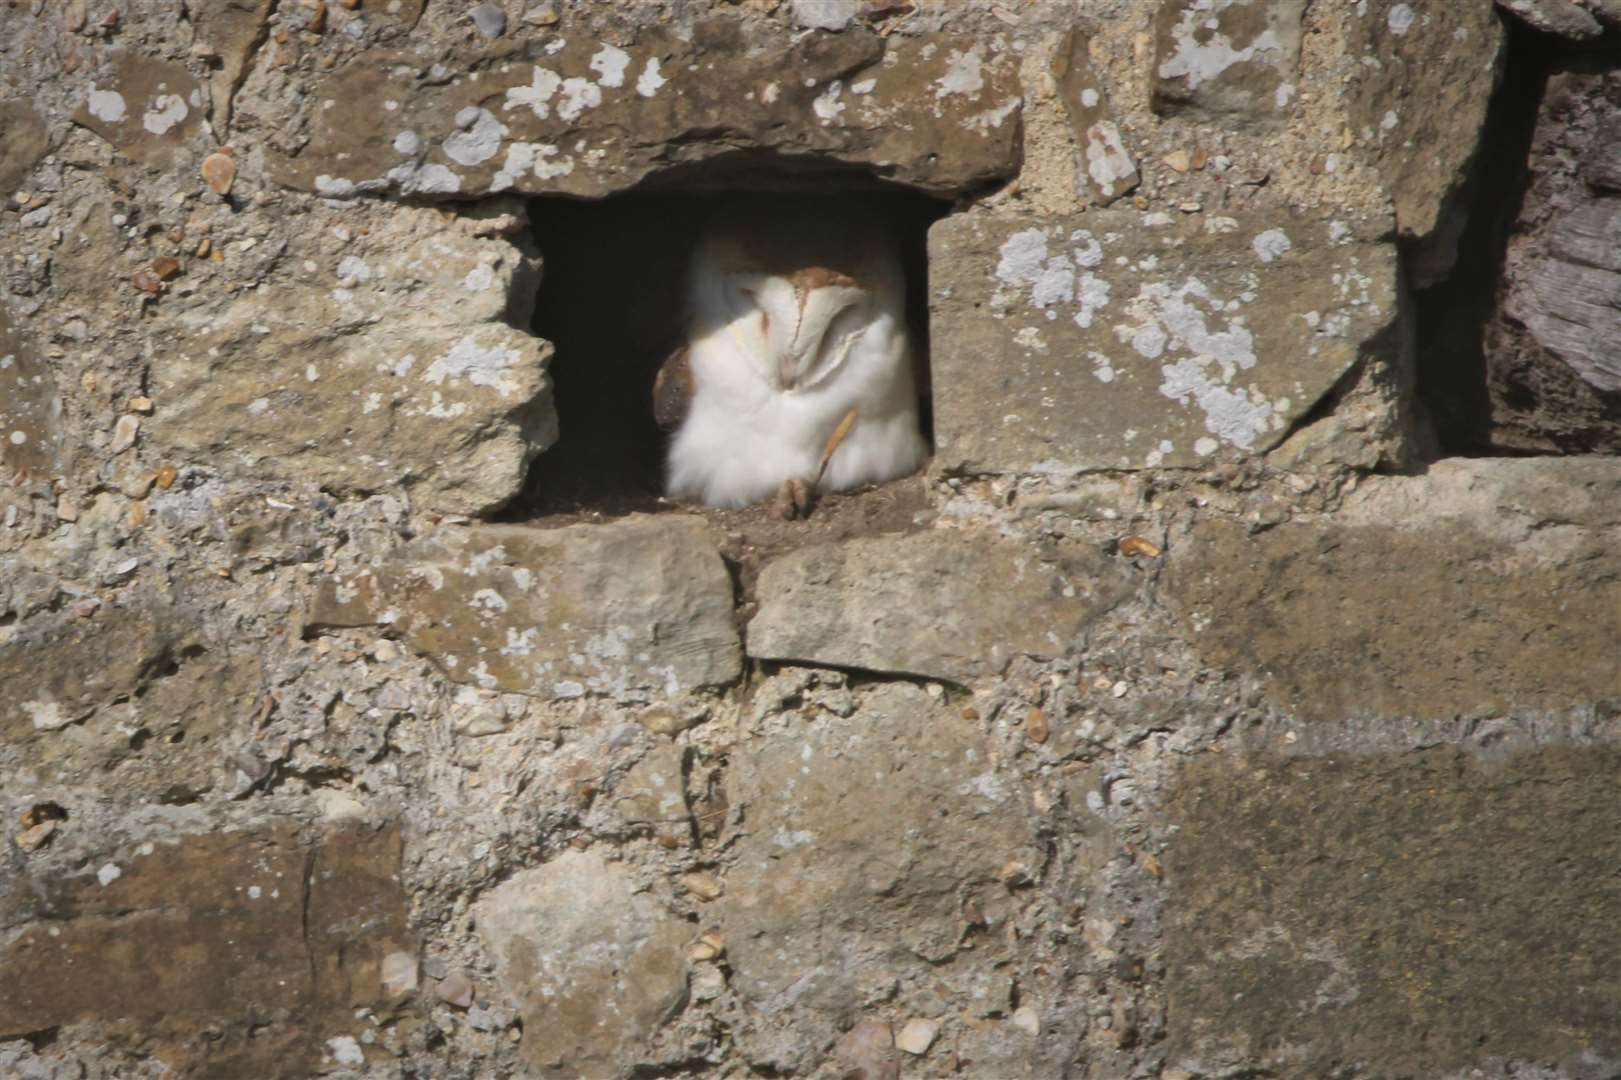 19th February: Viv Stewart spotted this barn owl sunbathing in an old wall in Beaulieu